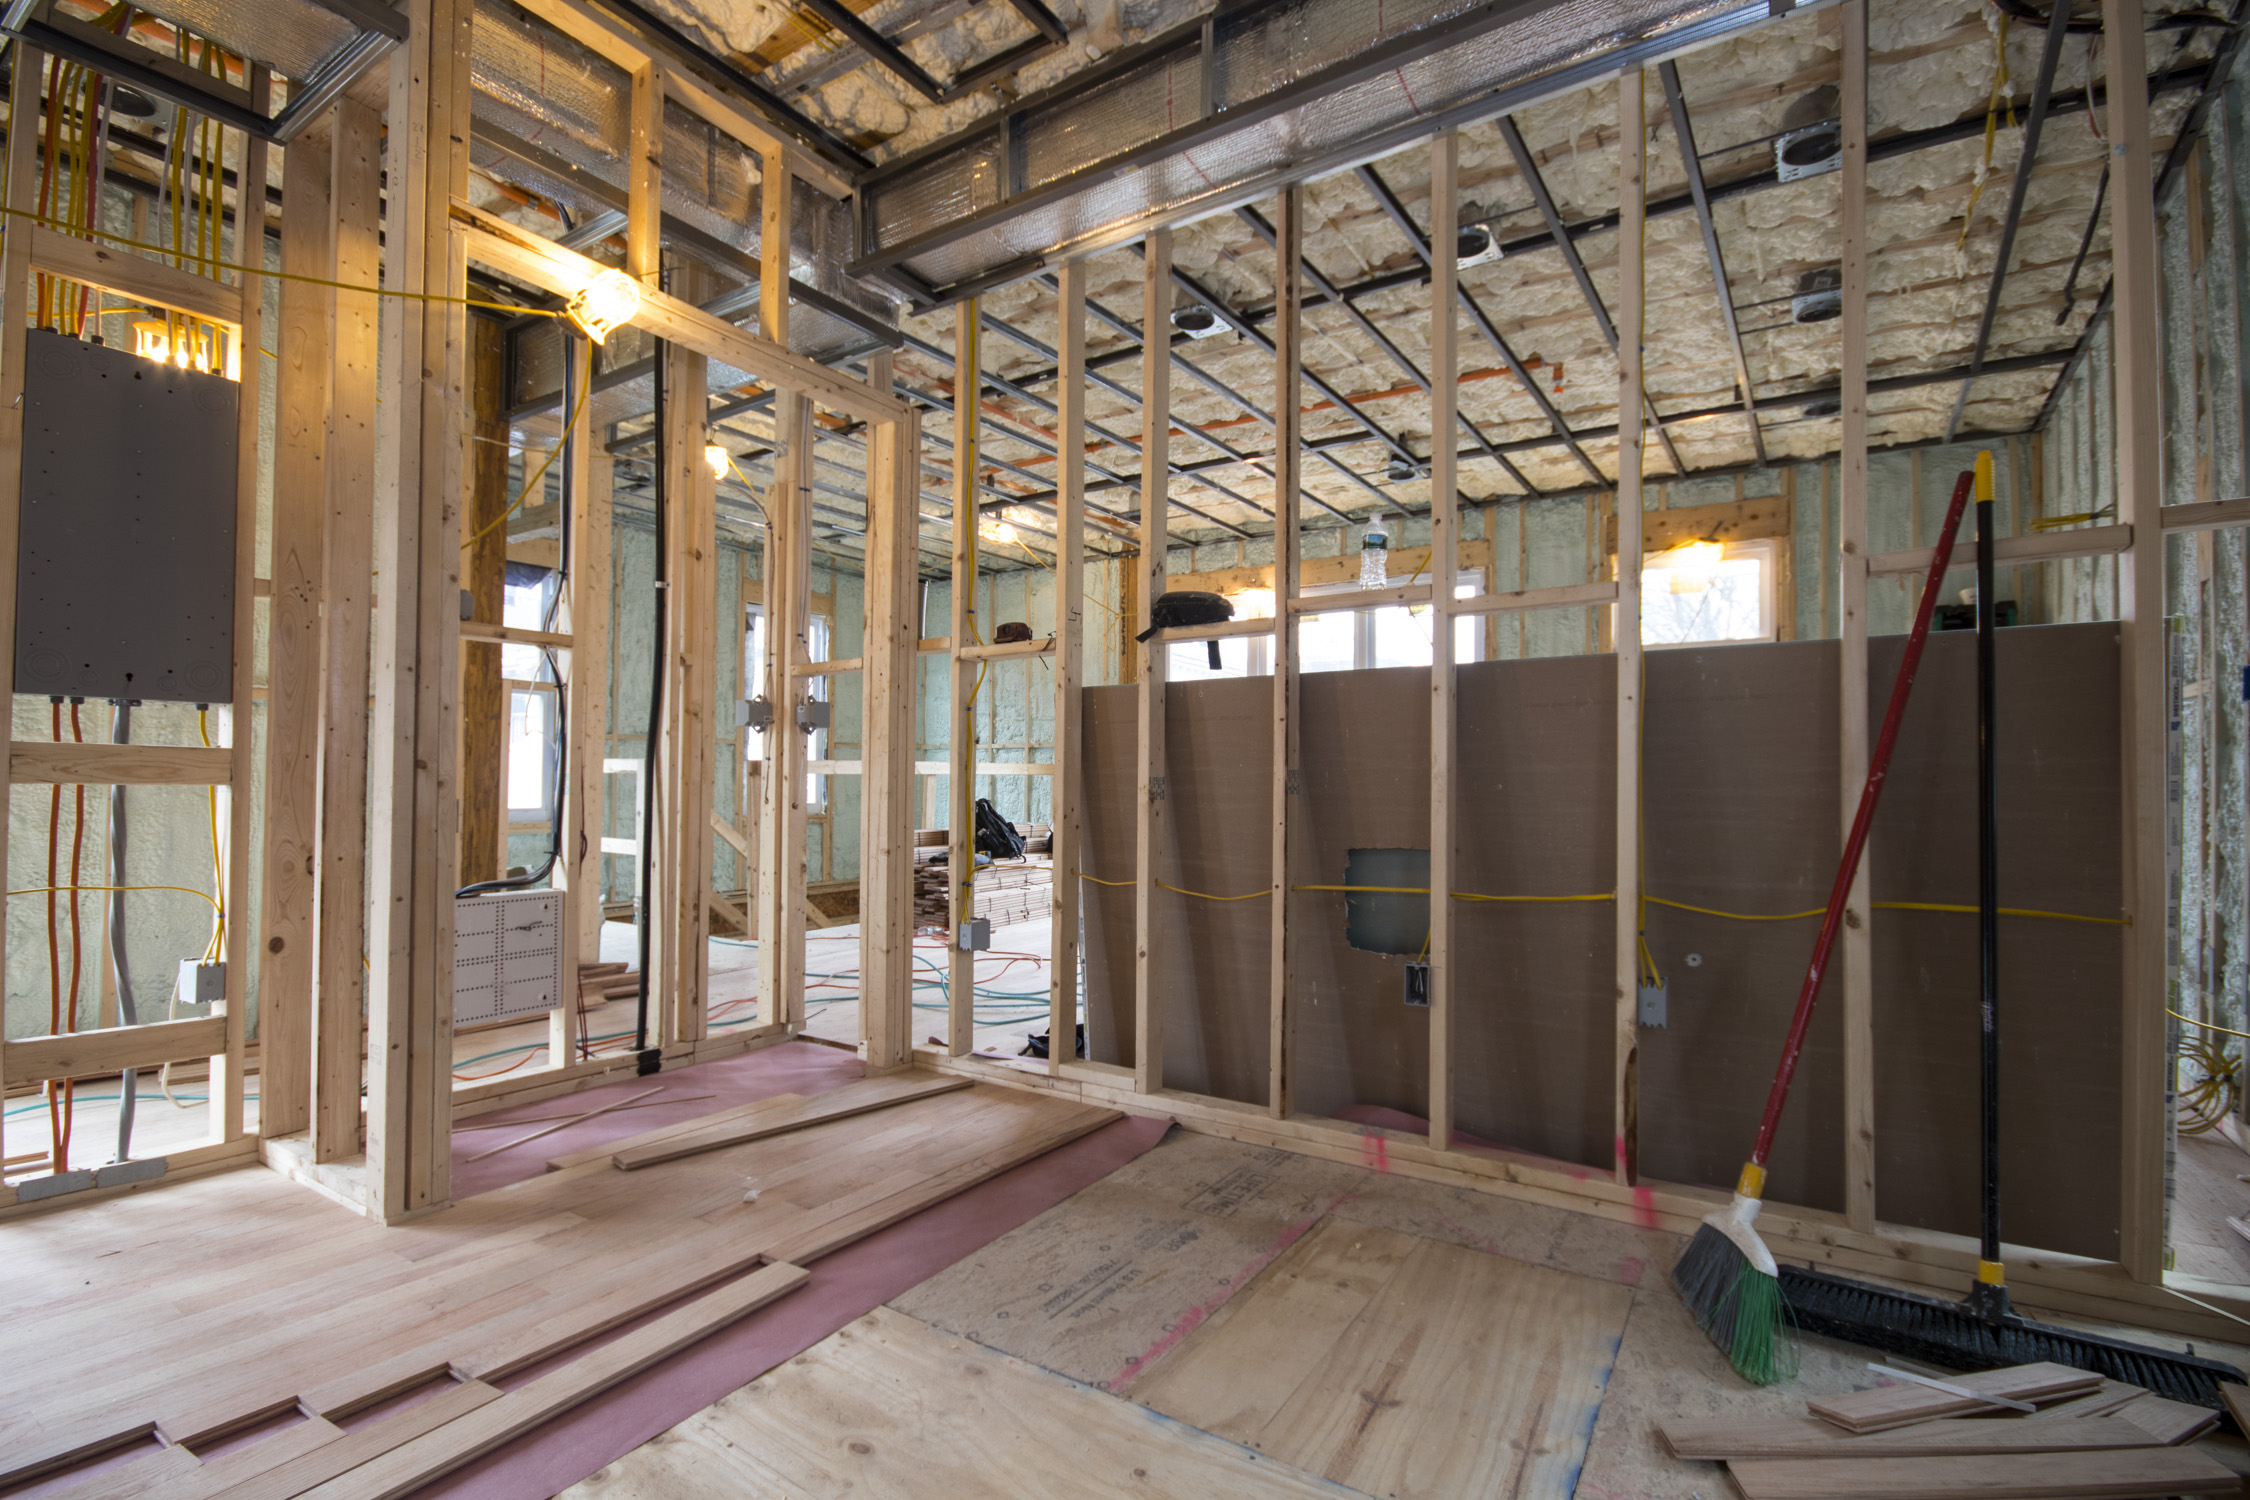 83 parker street home renovation boston general contractor_41